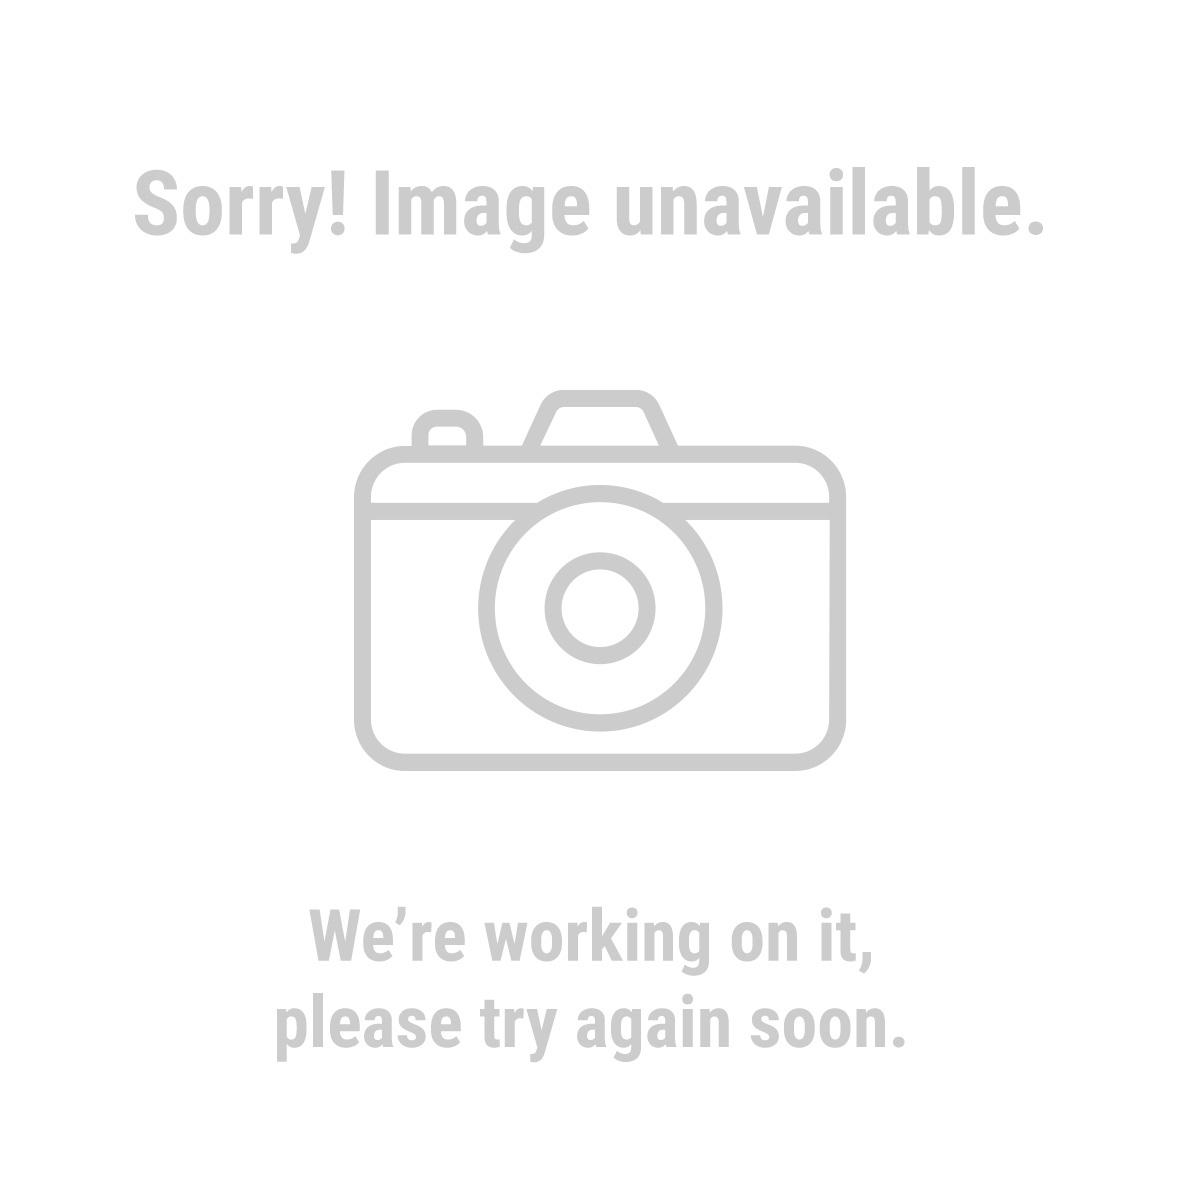 harbor freight high lift motorcycle lift kawasaki klr